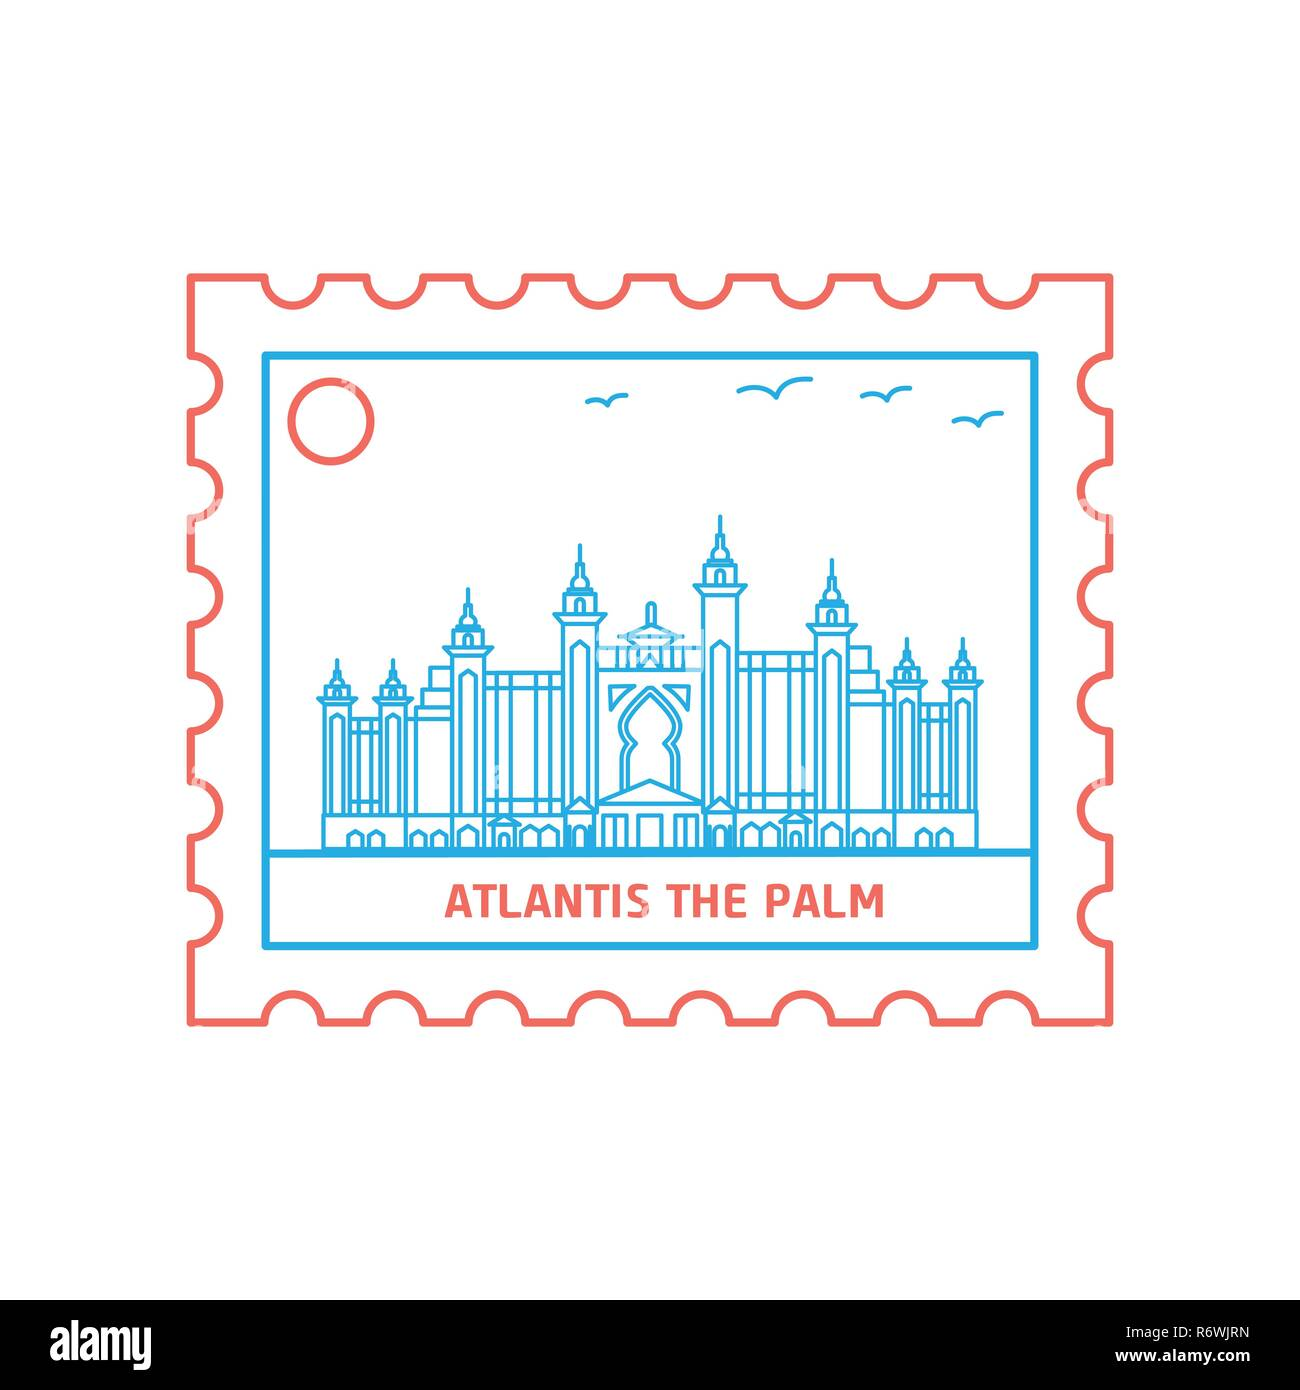 ATLANTIS THE PALM postage stamp Blue and red Line Style, vector illustration - Stock Image